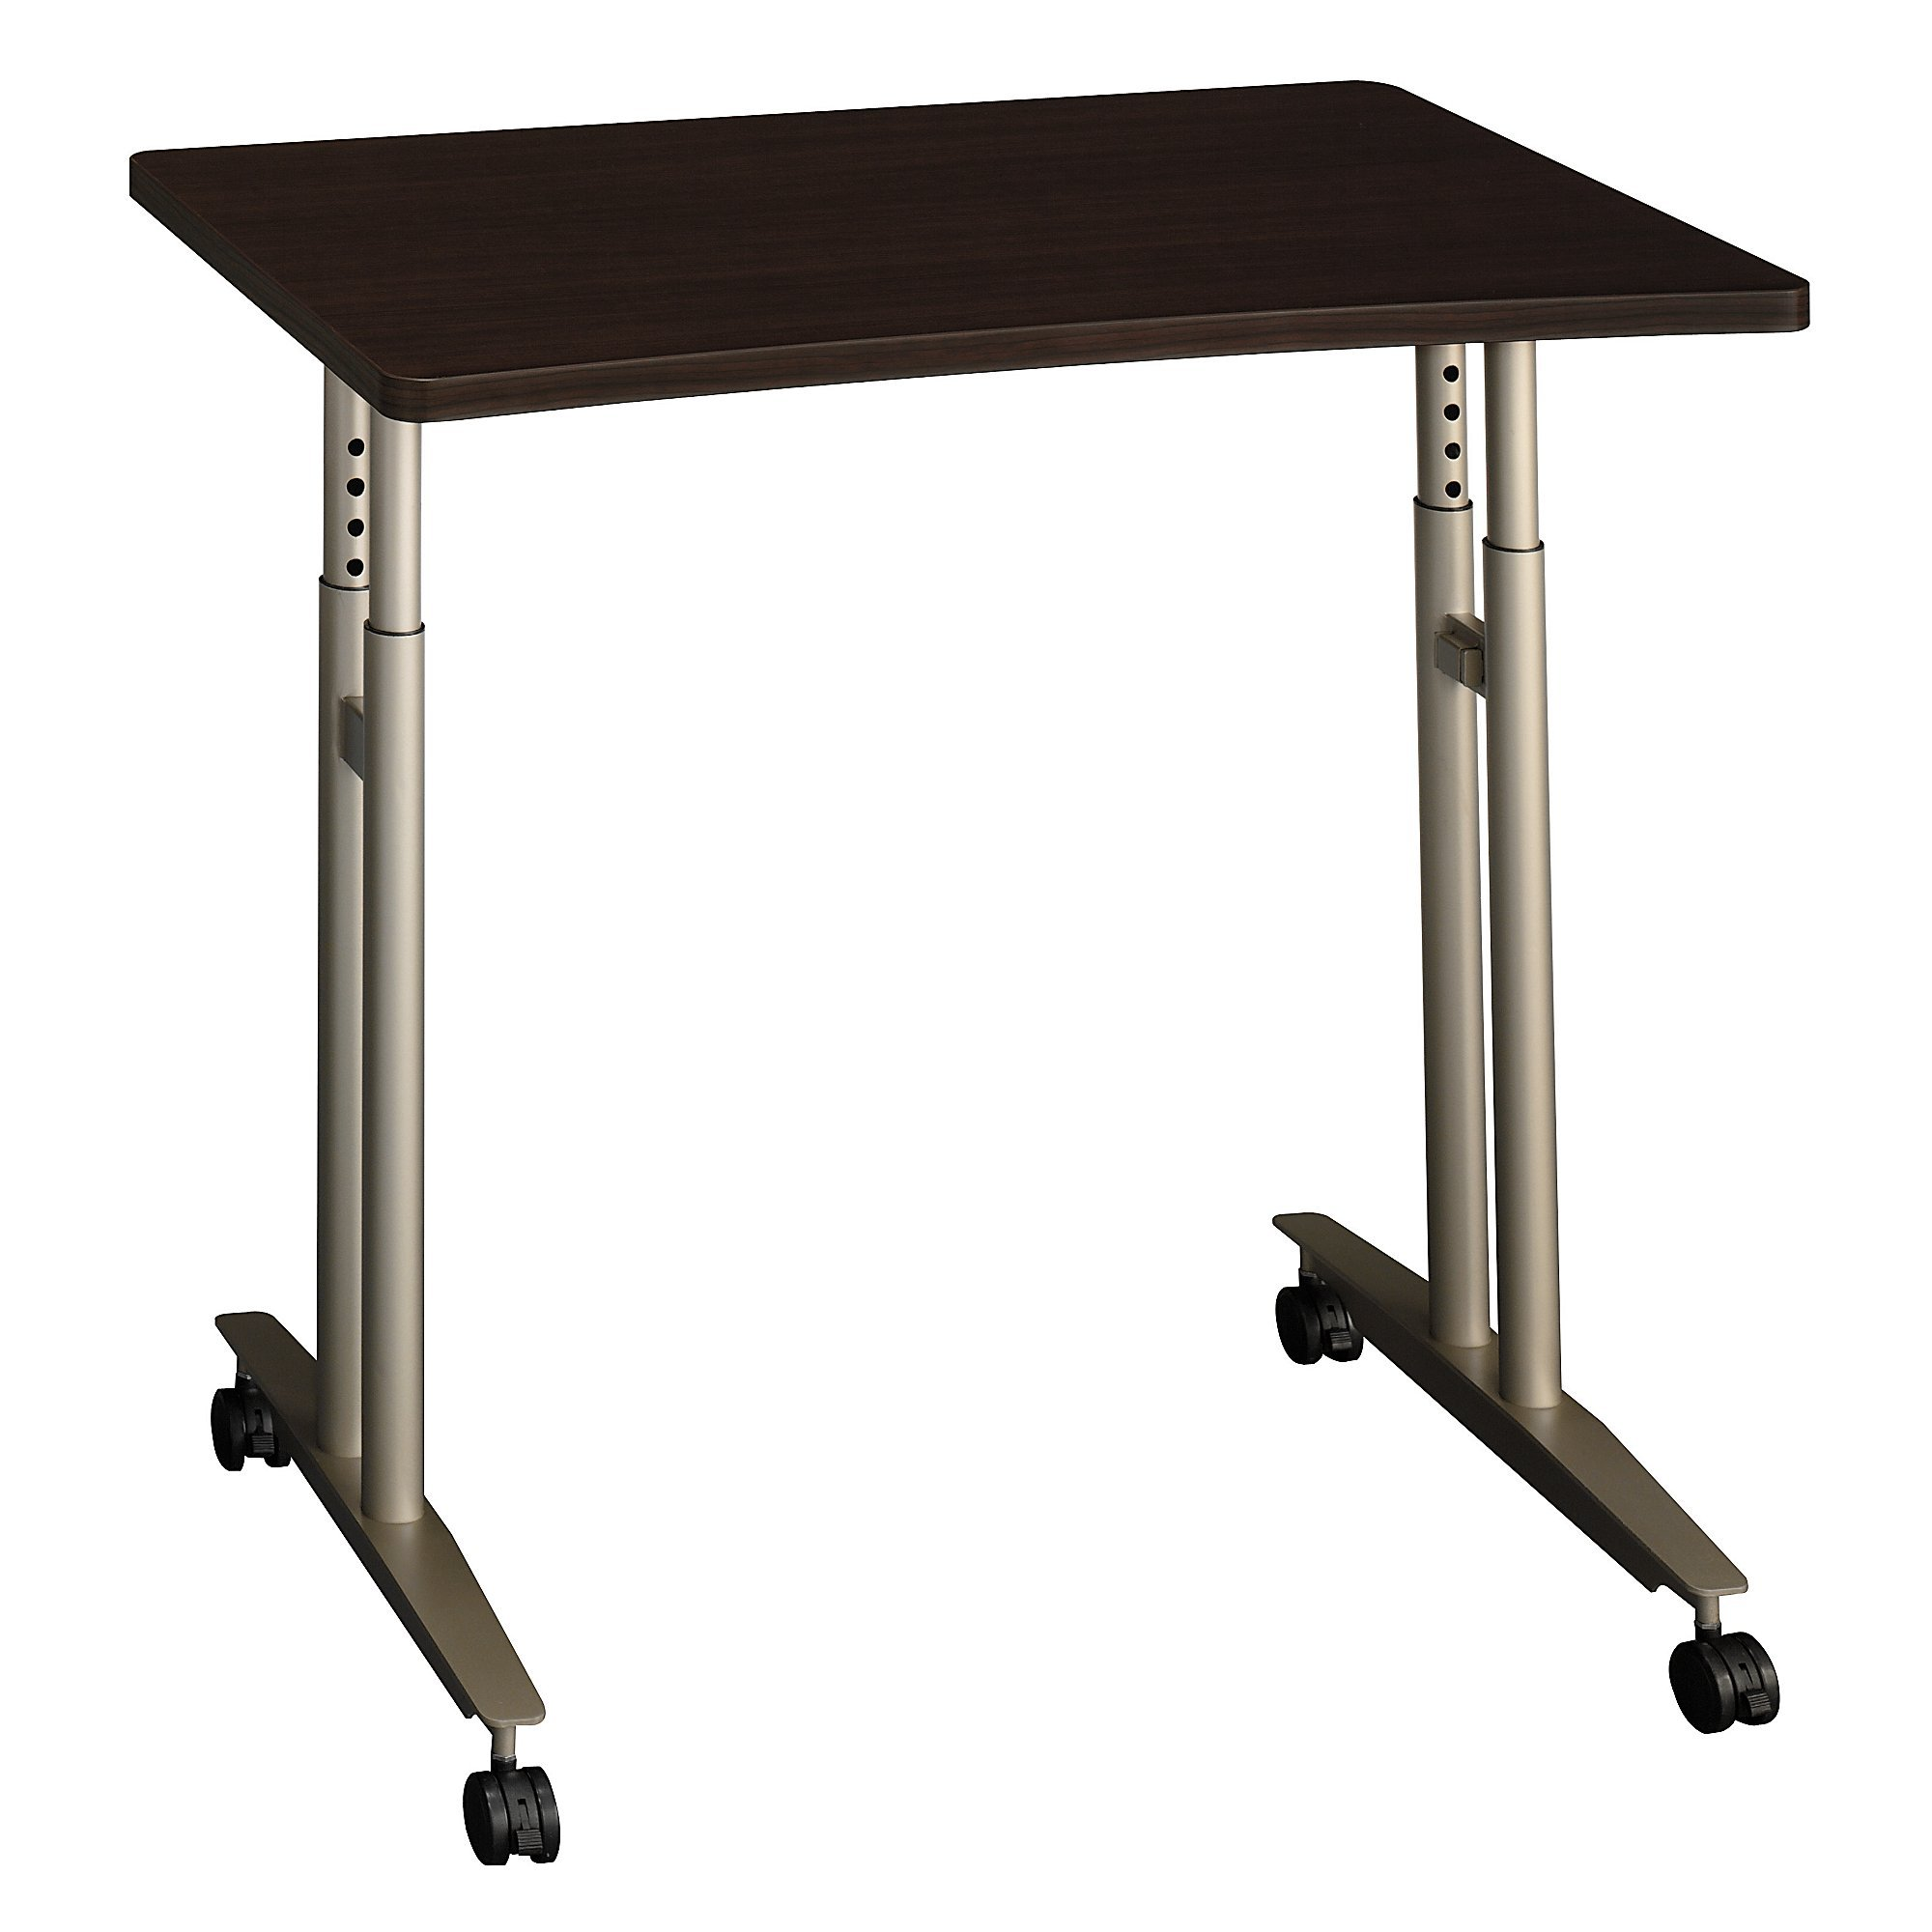 Bush Business Furniture WC12982 Series C 36W Adjustable Height Mobile Table, Mocha Cherry by Bush Business Furniture